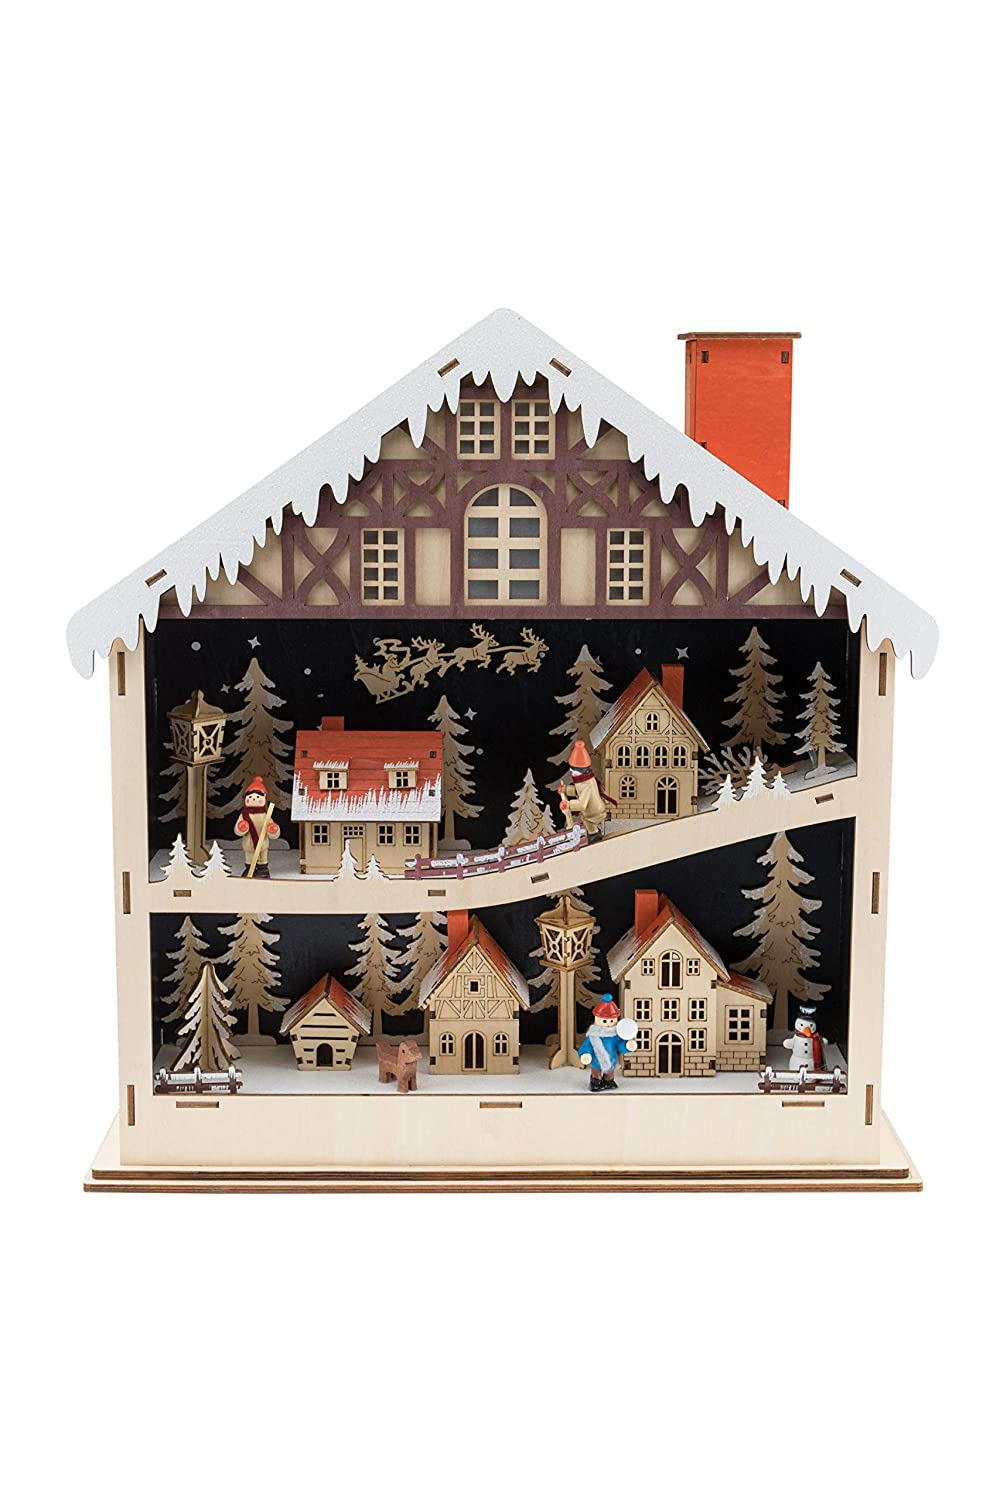 Clever Creations Traditional Wooden Village Christmas Decorations | Festive Christmas Decor| Battery Operated LED Christmas Lights | Multilayered Winter Scene